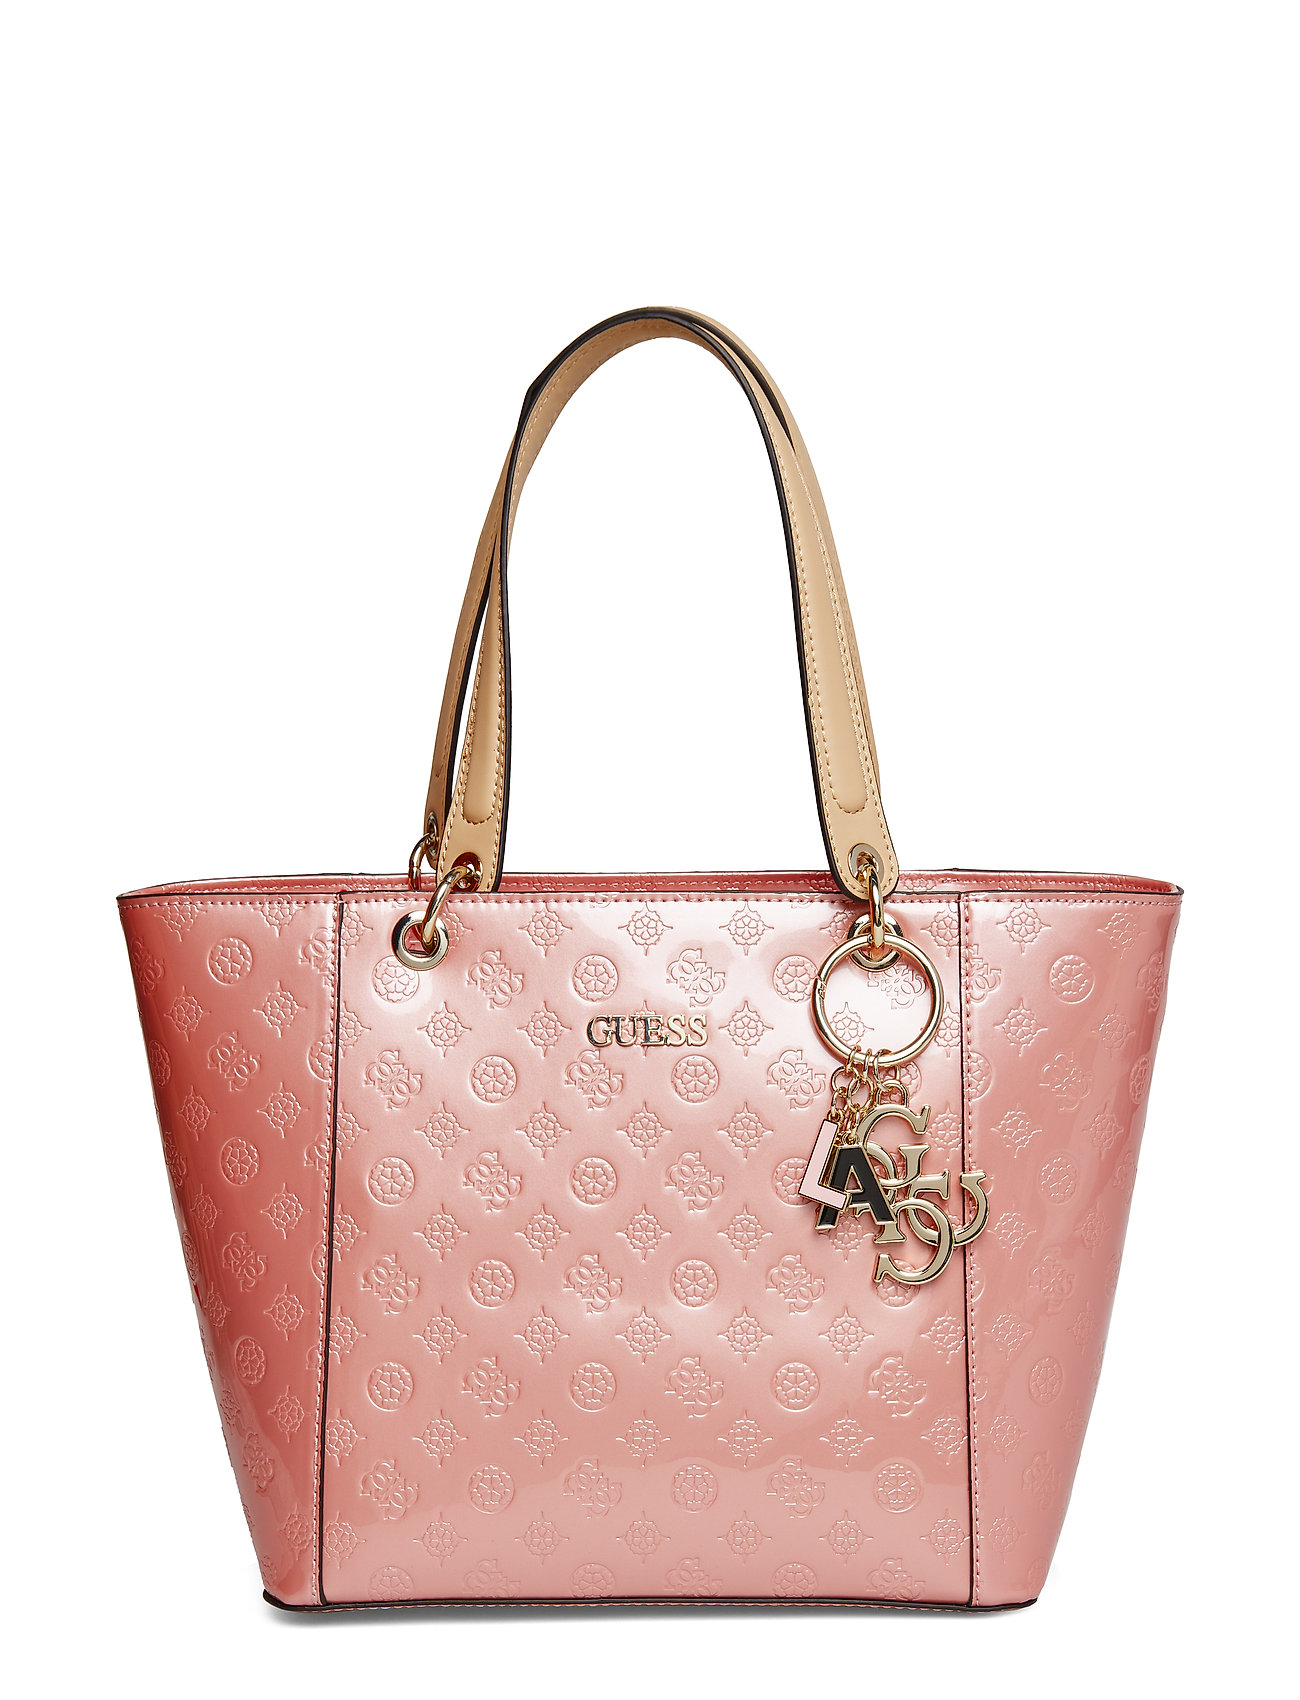 GUESS Kamryn Tote Bags Shoppers Fashion Shoppers Pink GUESS